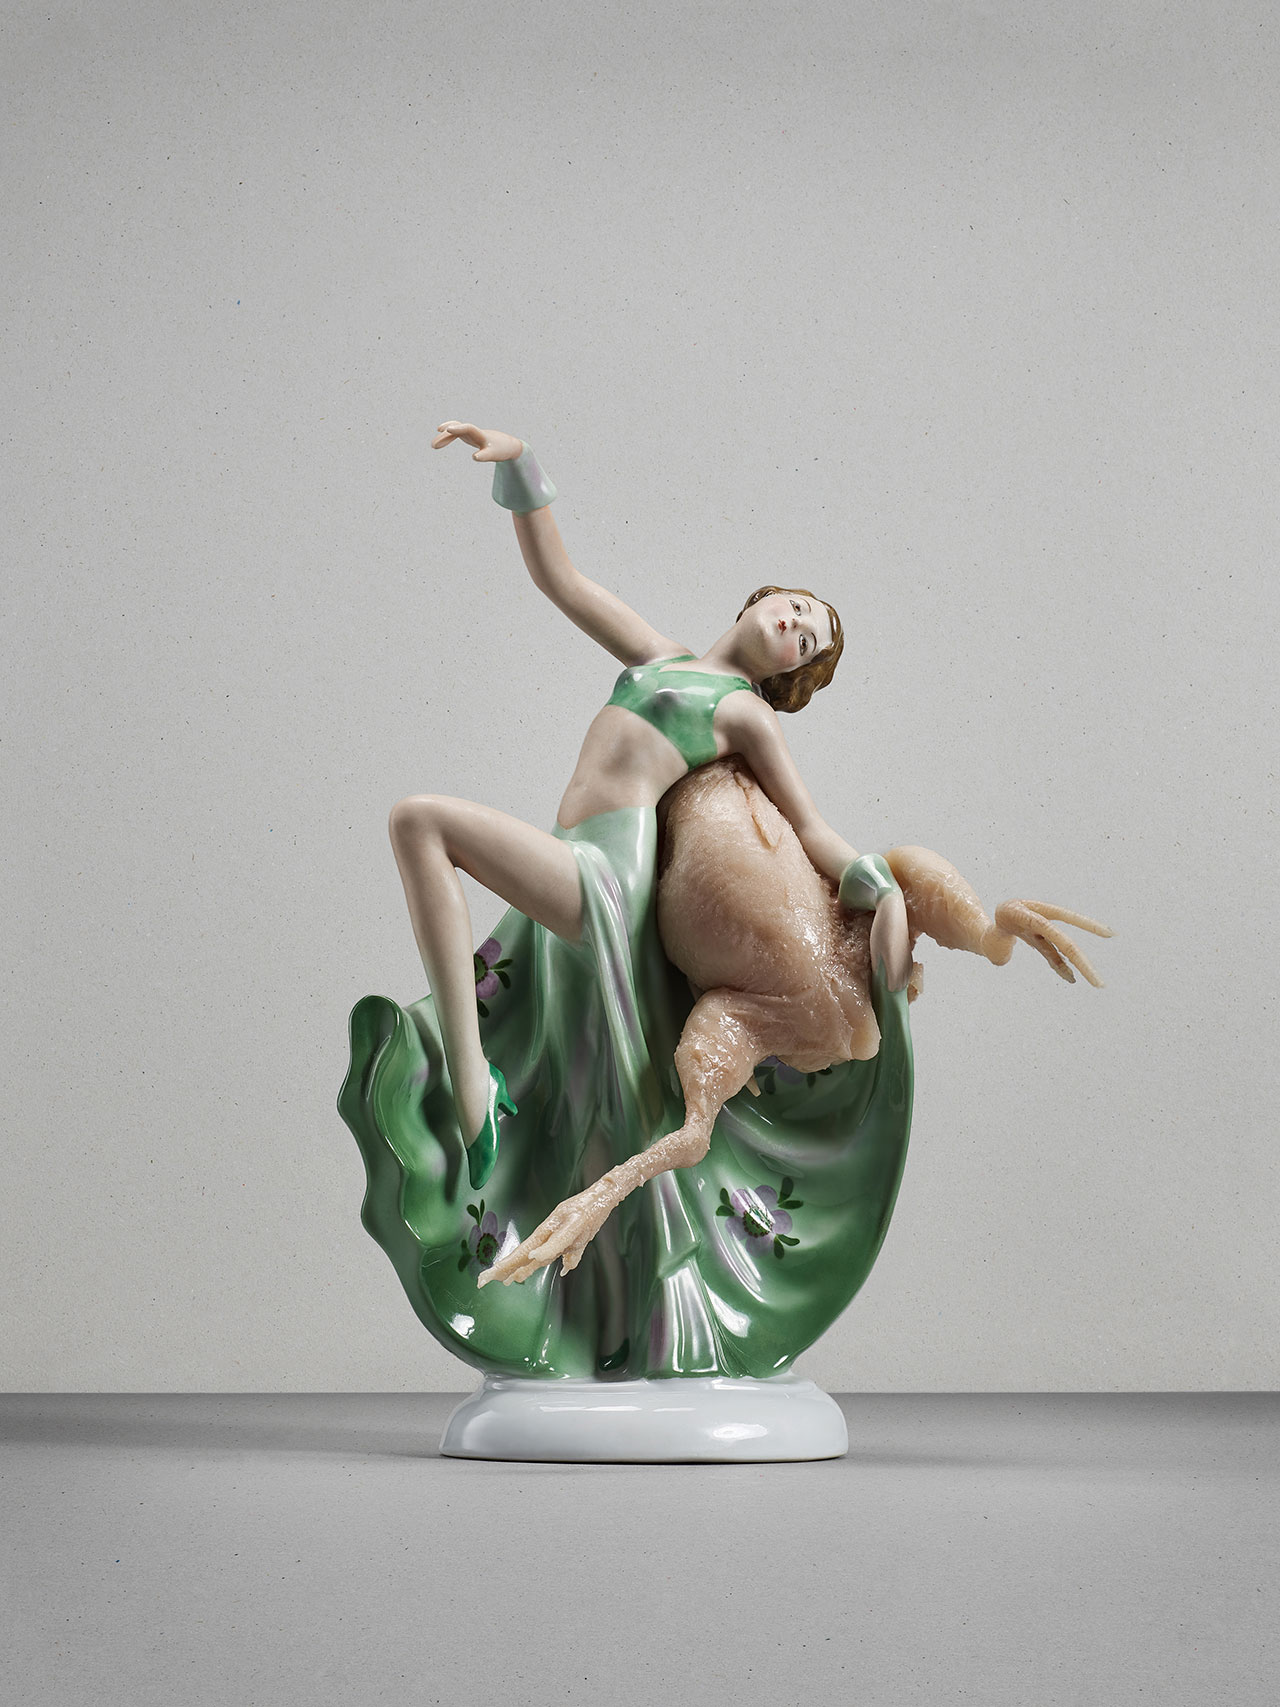 Artist Catharina Bond combines homemade silicon meat and skin with kitschy porcelain statuettes. Catharina Bond, Untitled (Dancer), 2015, porcelaine, silicone, hair. Galerie Reinthaler. Photo by Julia Gaisbacher.